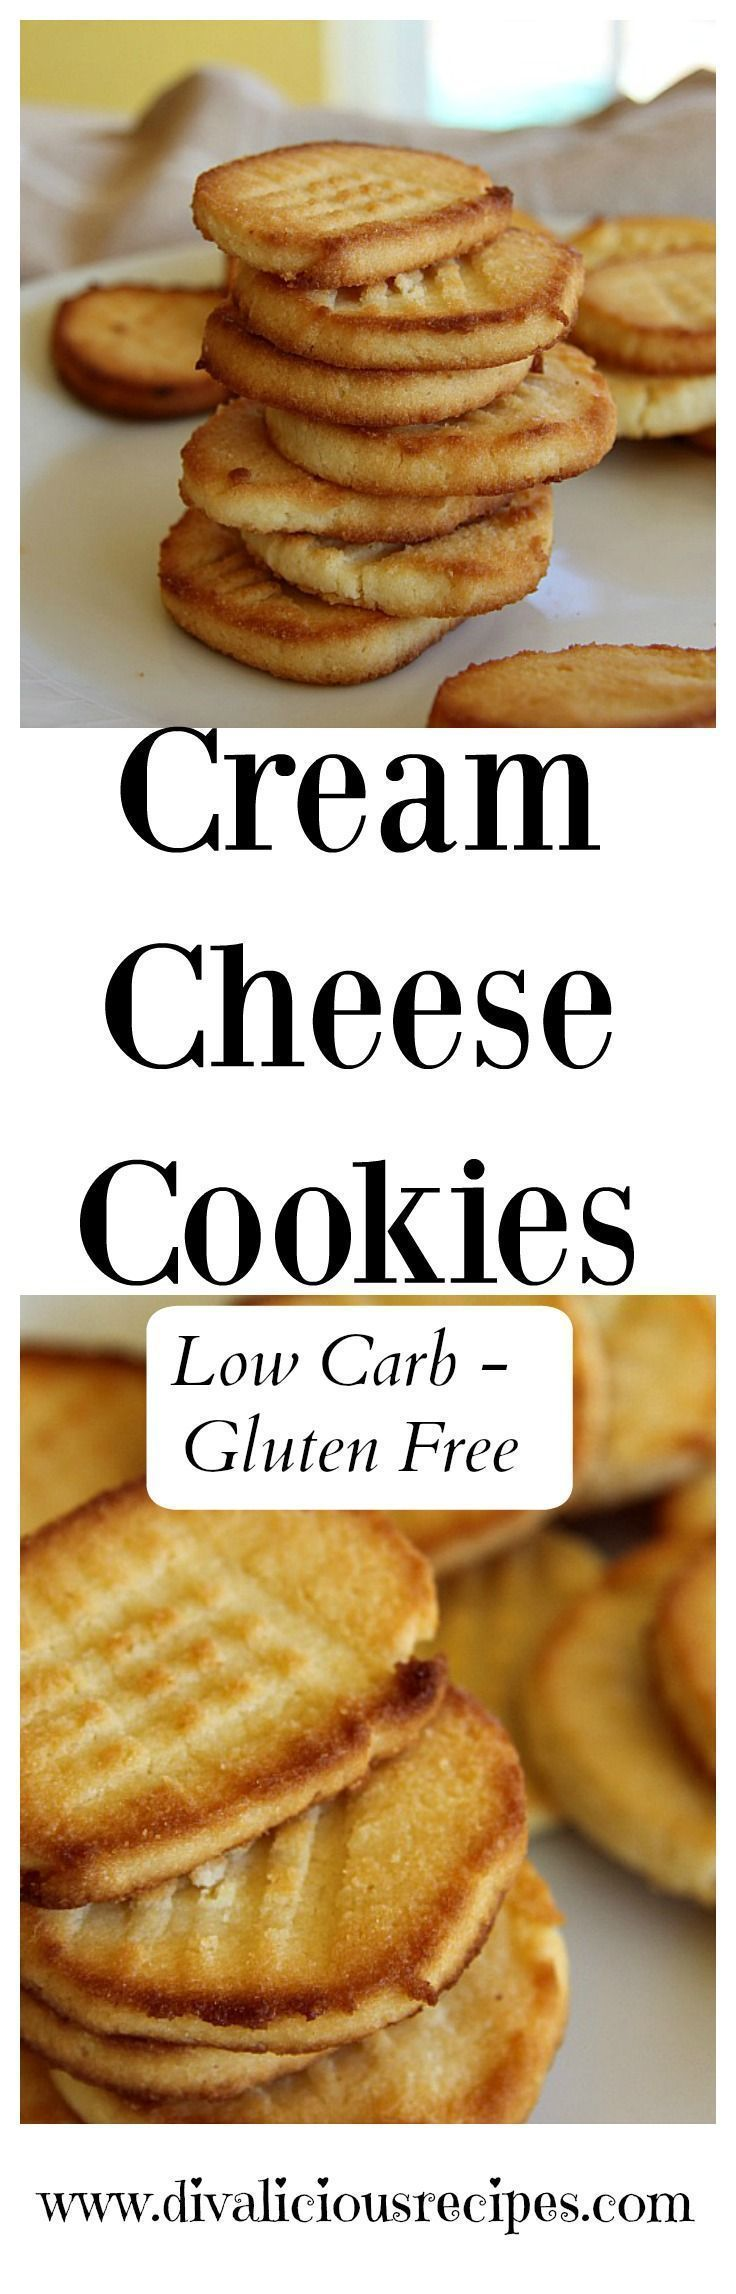 273 best Milk and Cookies images on Pinterest | Postres, Baking ...